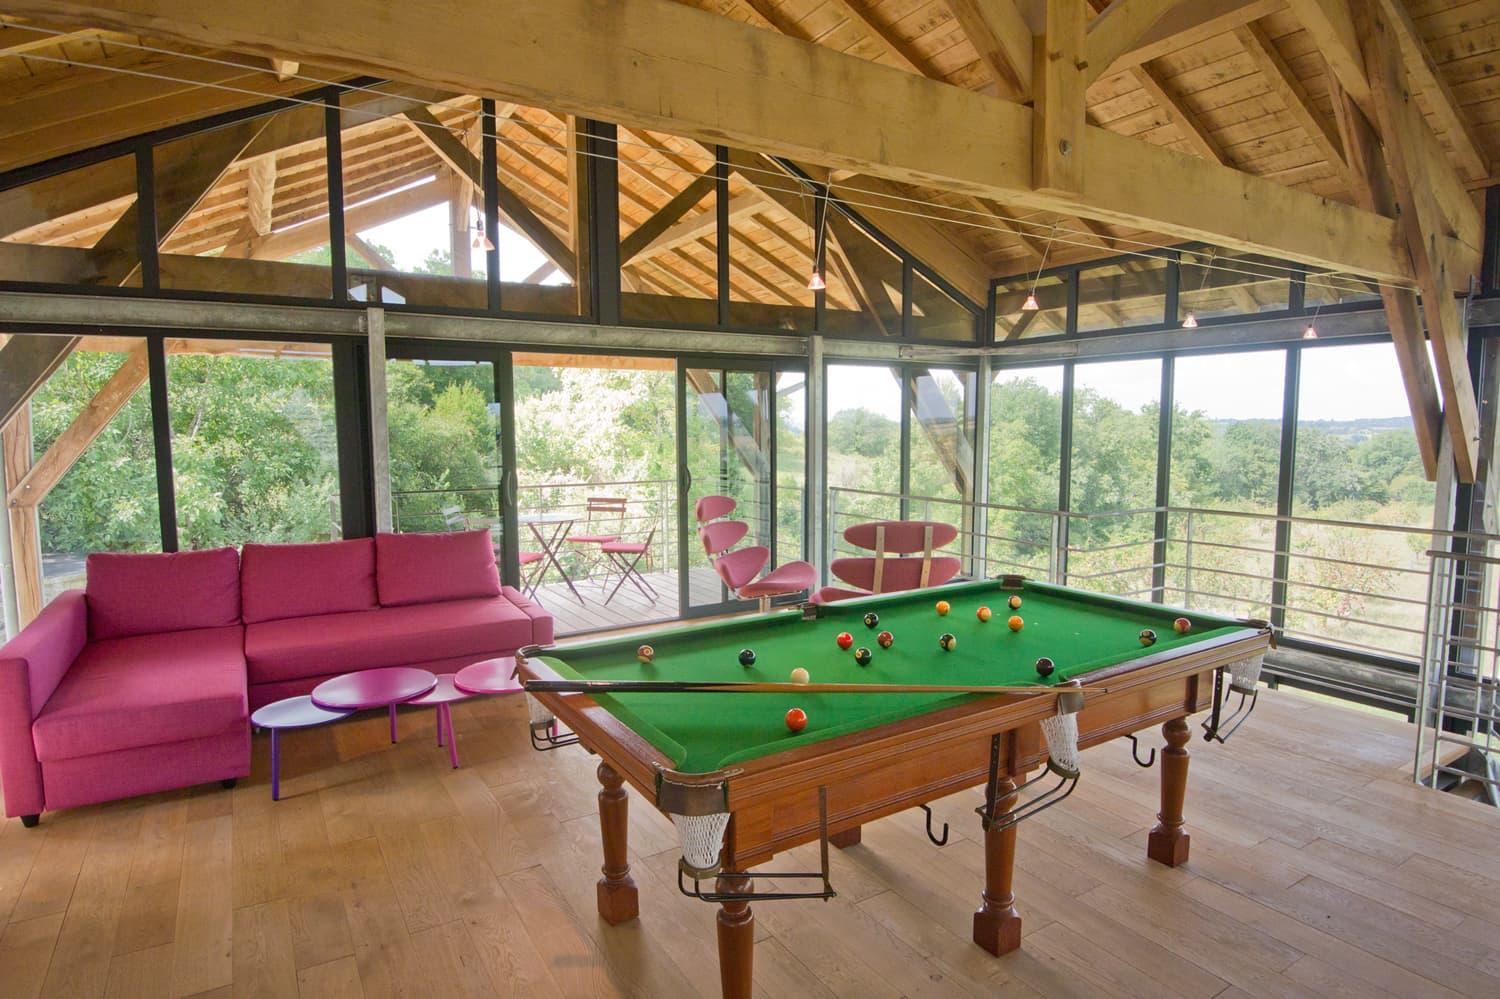 Living room with pool table in South West France holiday home